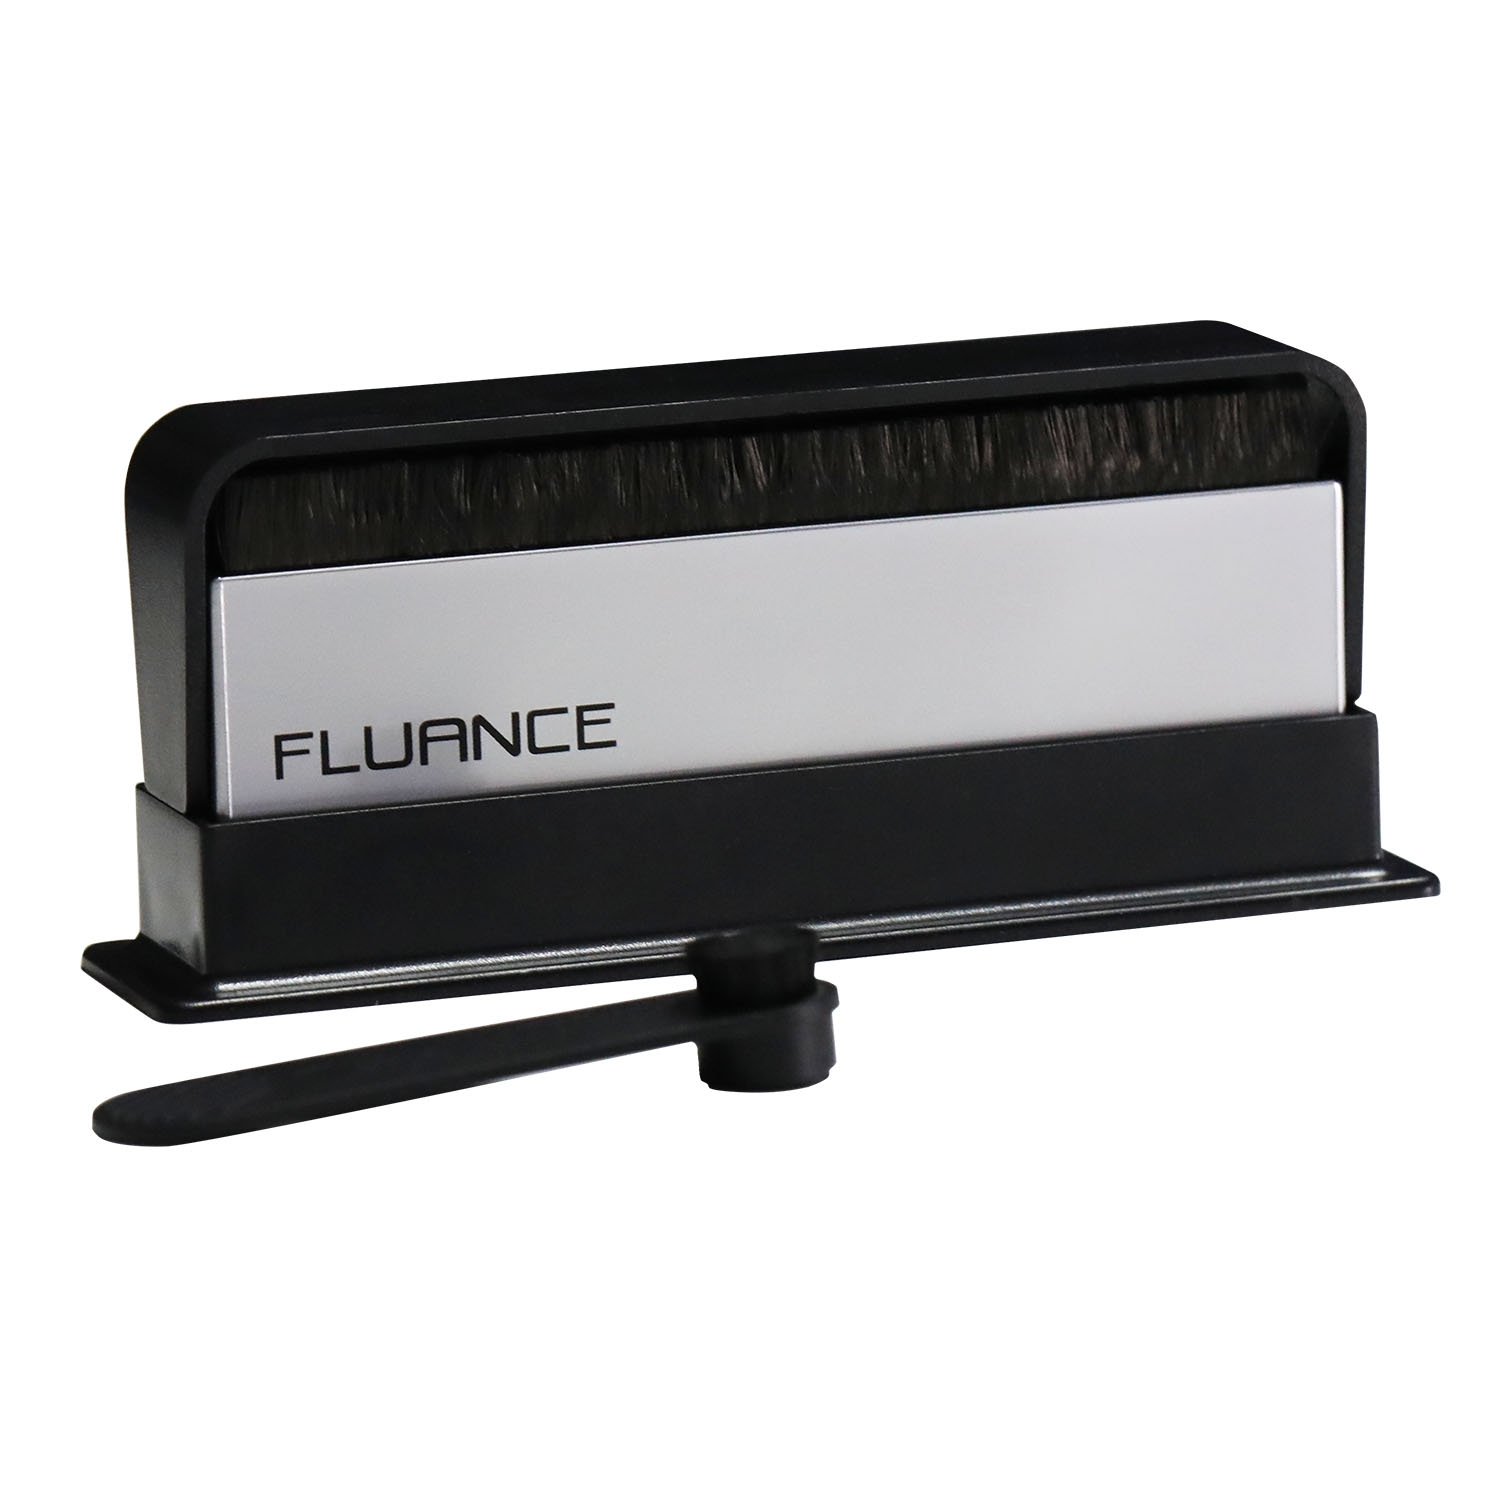 Fluance Vinyl Record & Stylus Cleaning Kit